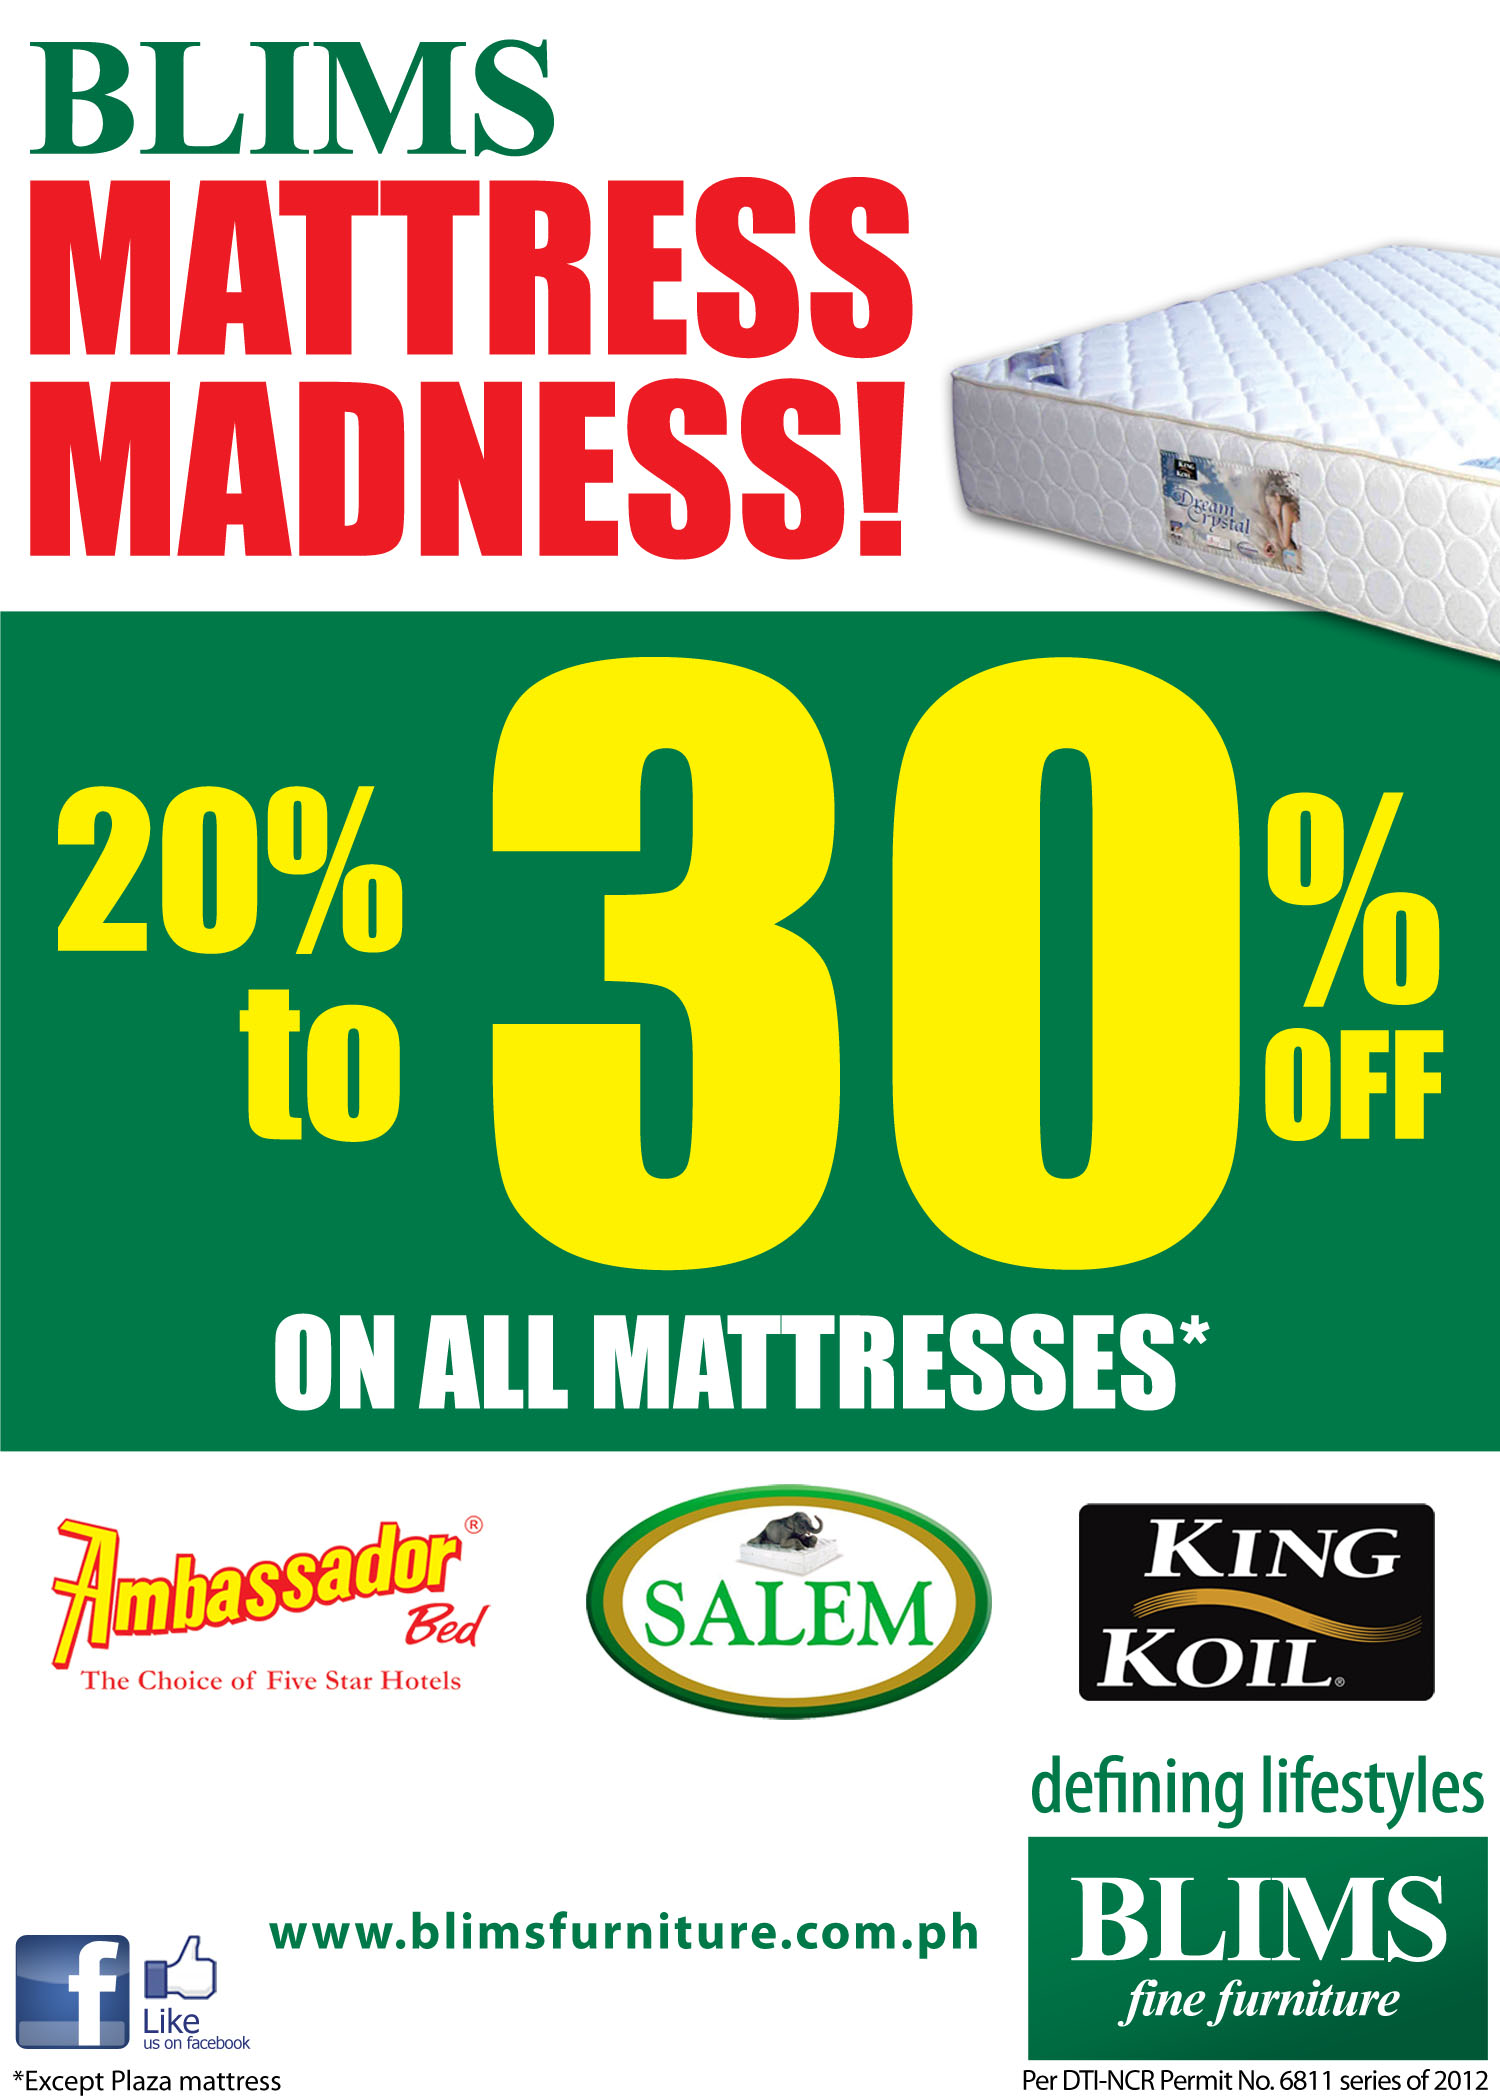 BLIMS Mattress Madness December 2012